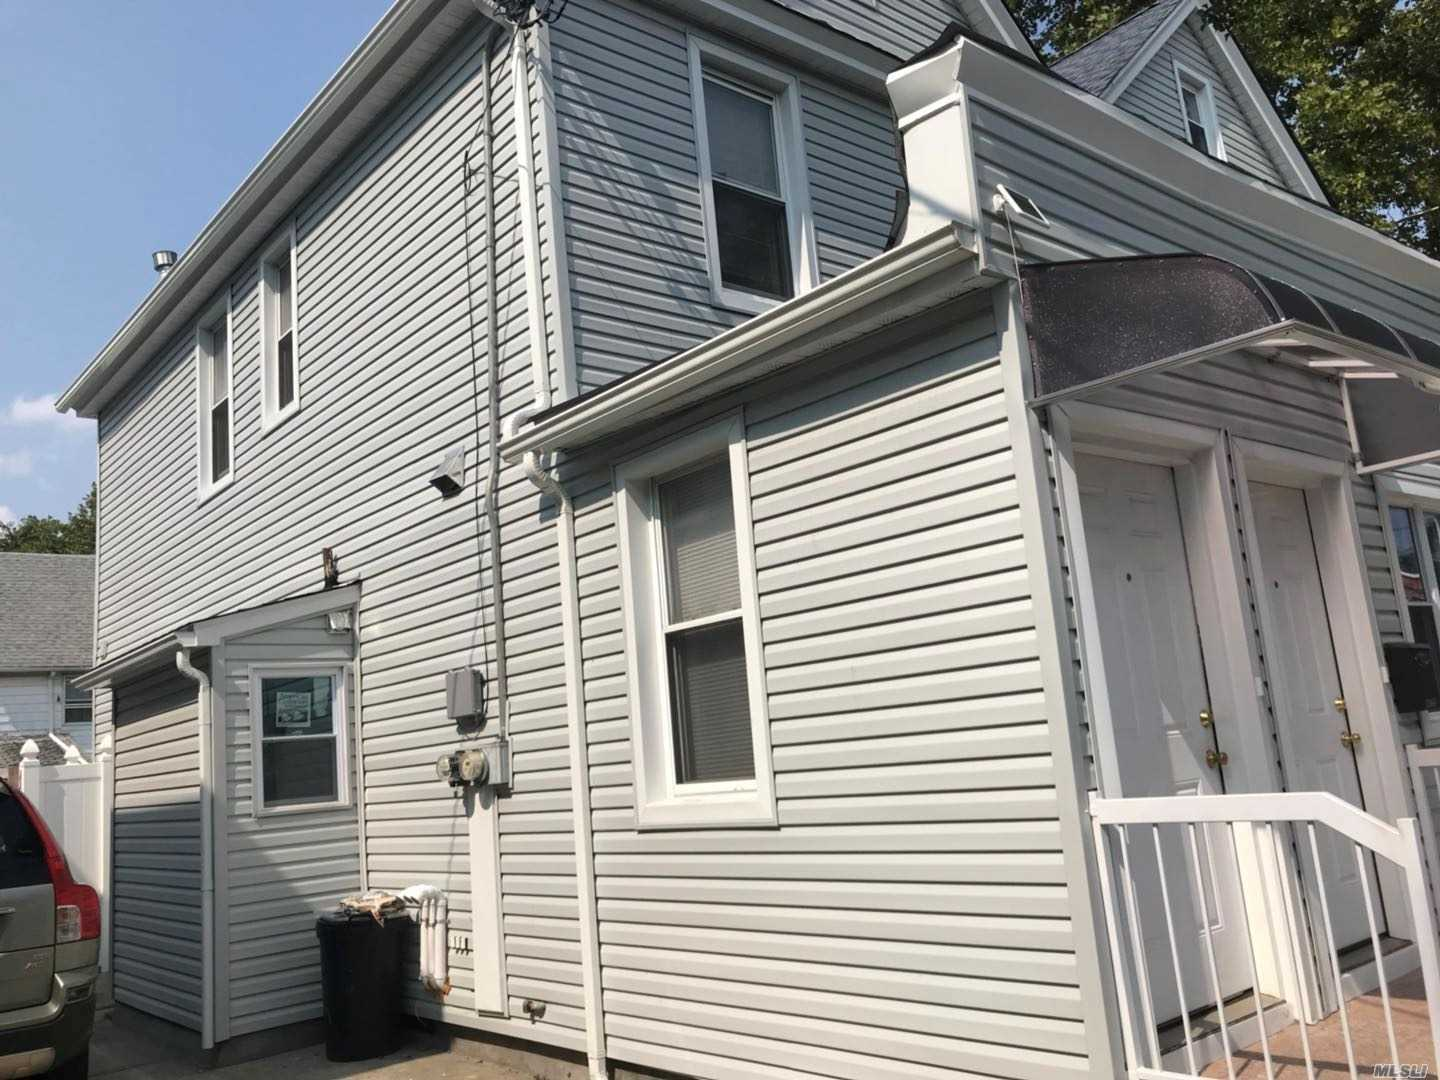 All New Renovated Apt House 1st Floor, Diamond Condition, New Appliances, New Floor, New Windows, 500Sqft Plus 450Sqft Attic, Plenty Of Storage Rooms. Easy Parking On The Street. No Pets And No Smoking, Credit And Income Check Required. Near By 295 Clearview Expwy. Q27 To Main St.